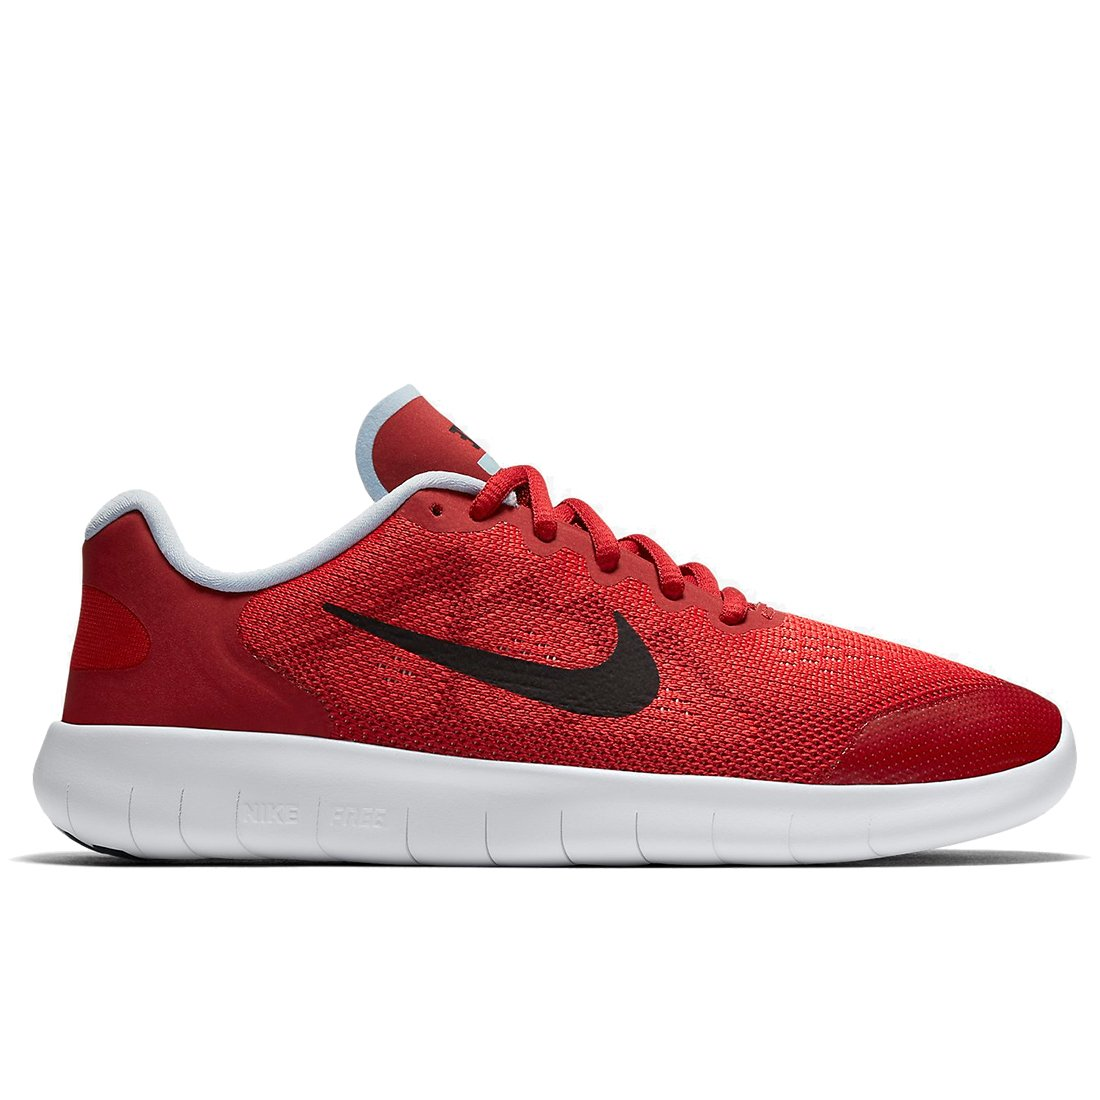 Nike Boys Free RN 2017 Size 4.5 UniversityRed/PortWine/ToughRed by NIKE